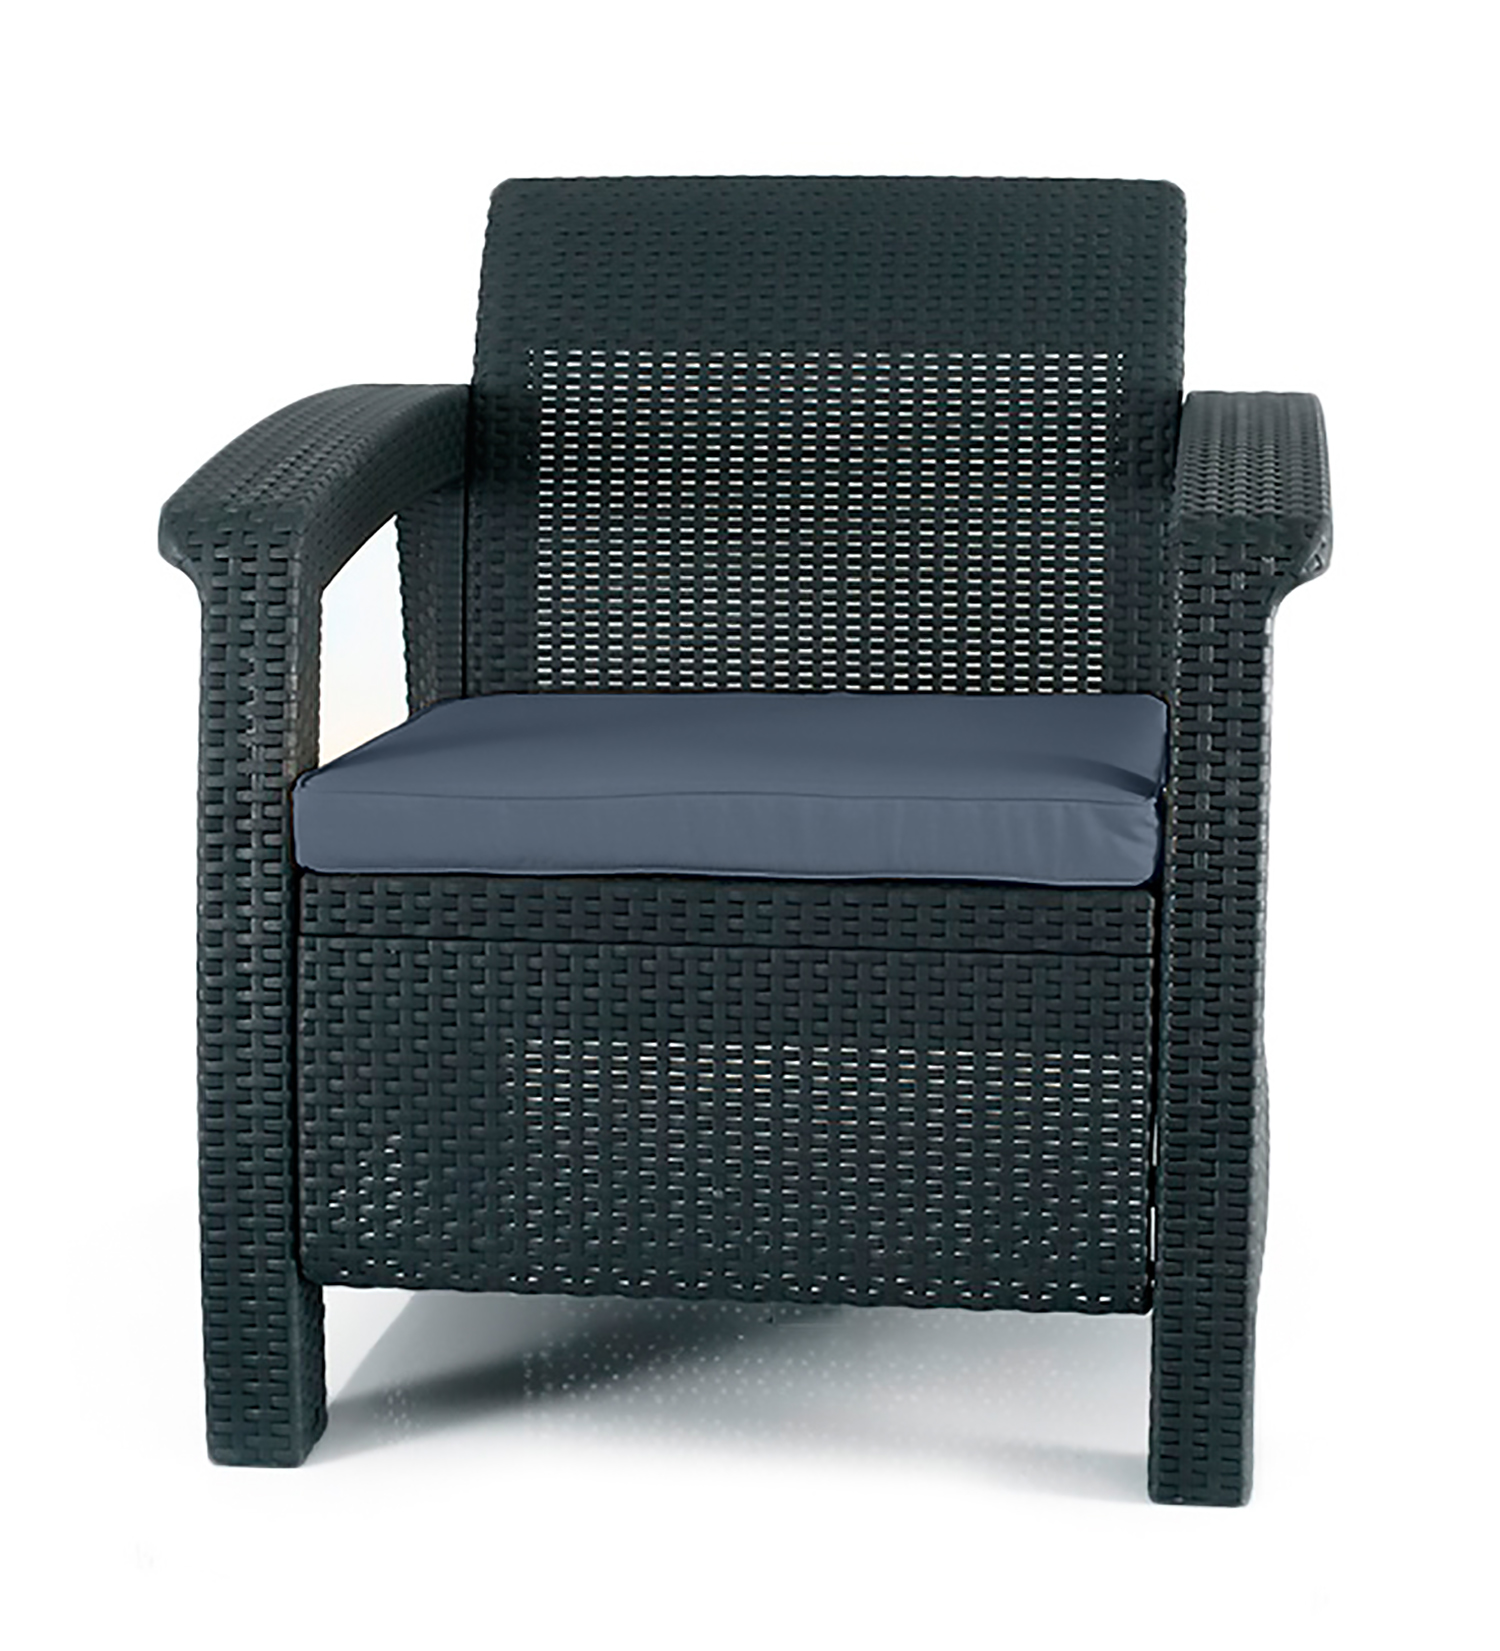 Keter Corfu Resin Armchair with Cushions, All-Weather Plastic Patio Furniture, Charcoal Gray Rattan